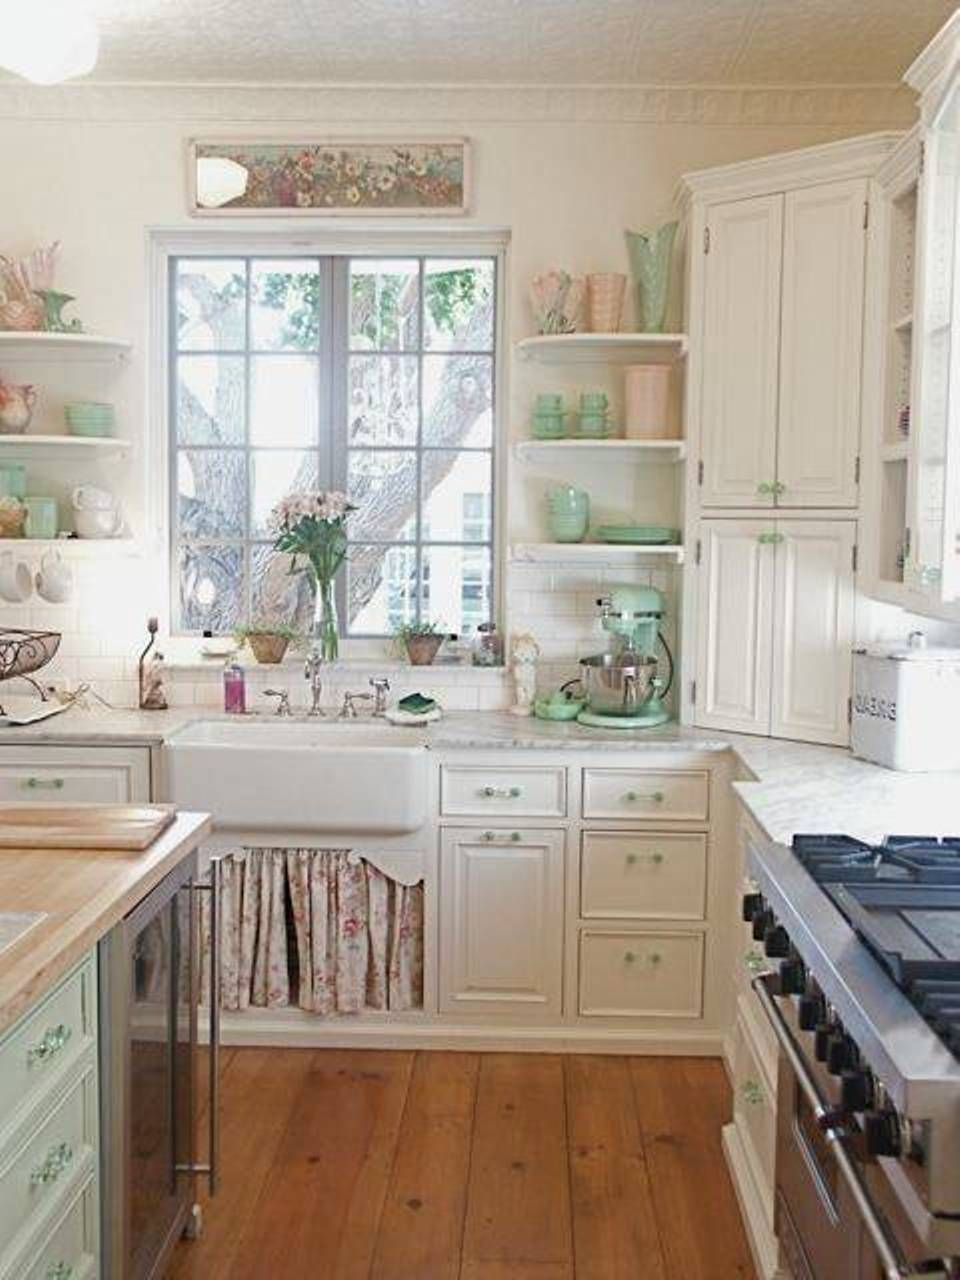 I want to design my own kitchen someday.... | For the Home | Cocinas I Want To Design My Own Kitchen on i want crying, i want games, i want someone else, i want yours, i want now, i want the same, i want the new, i want a person, i want money, i want a family, i want another,